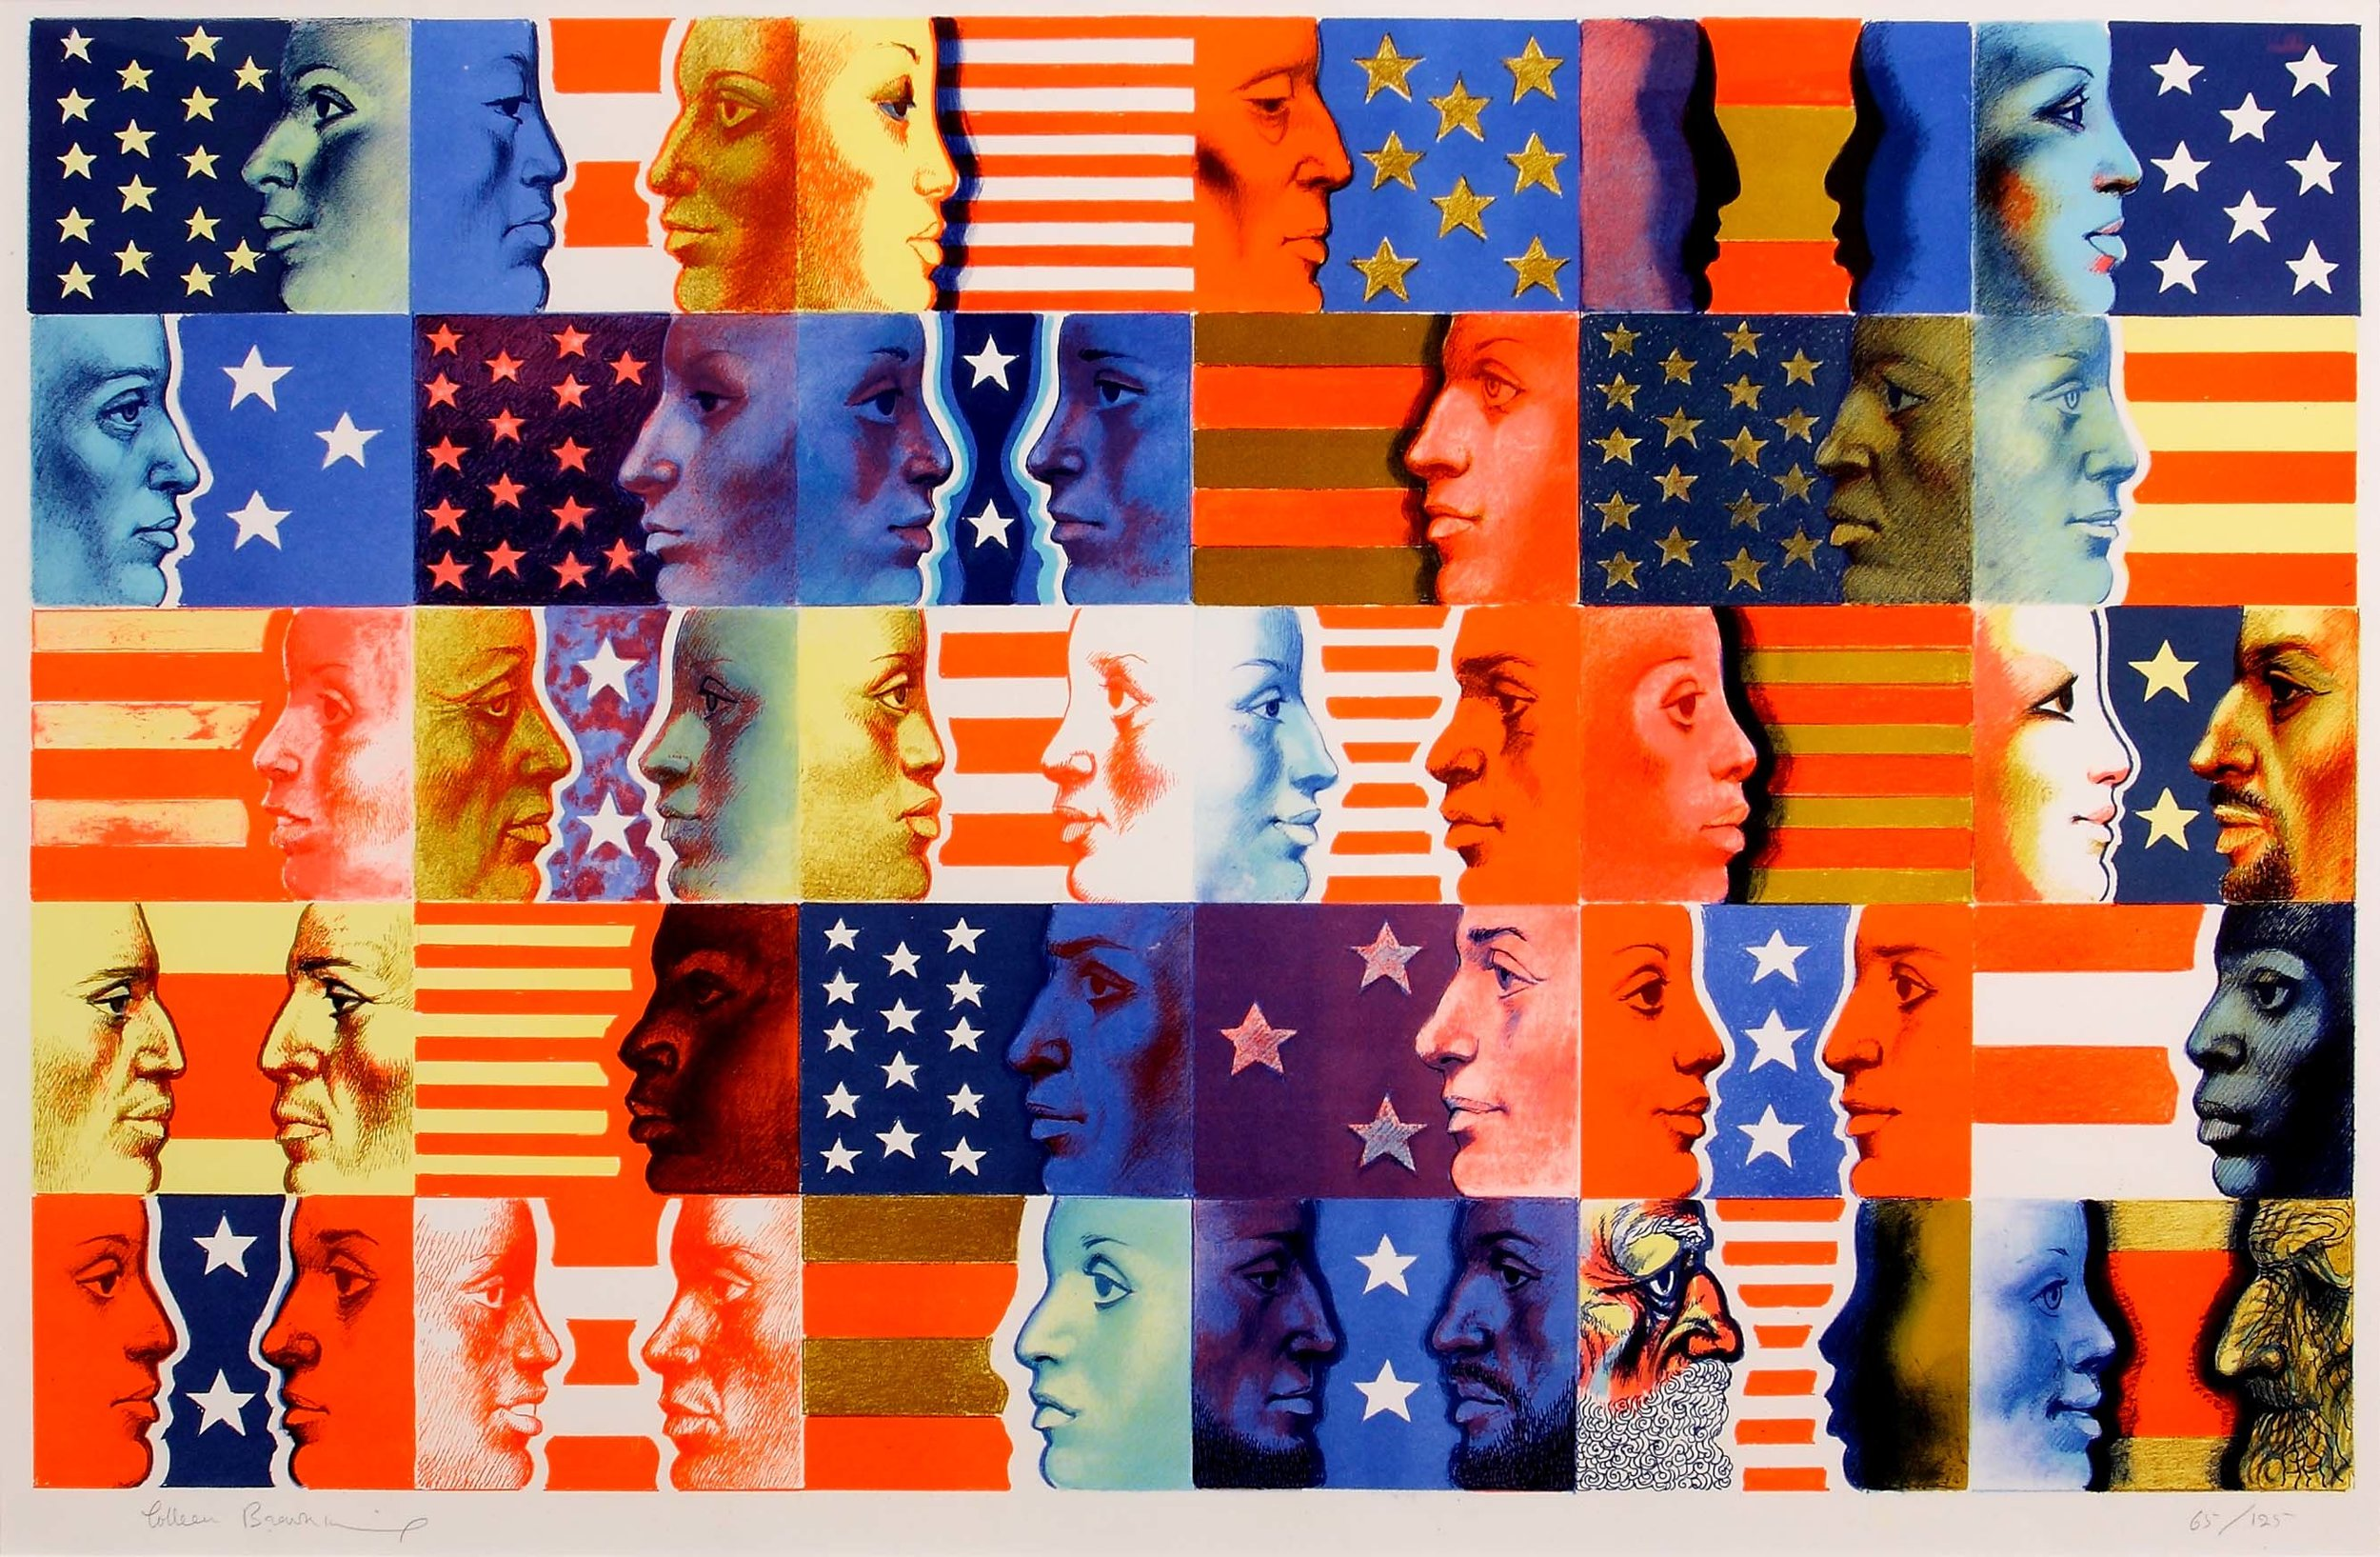 The sides of different faces in squares against stars and stripes.